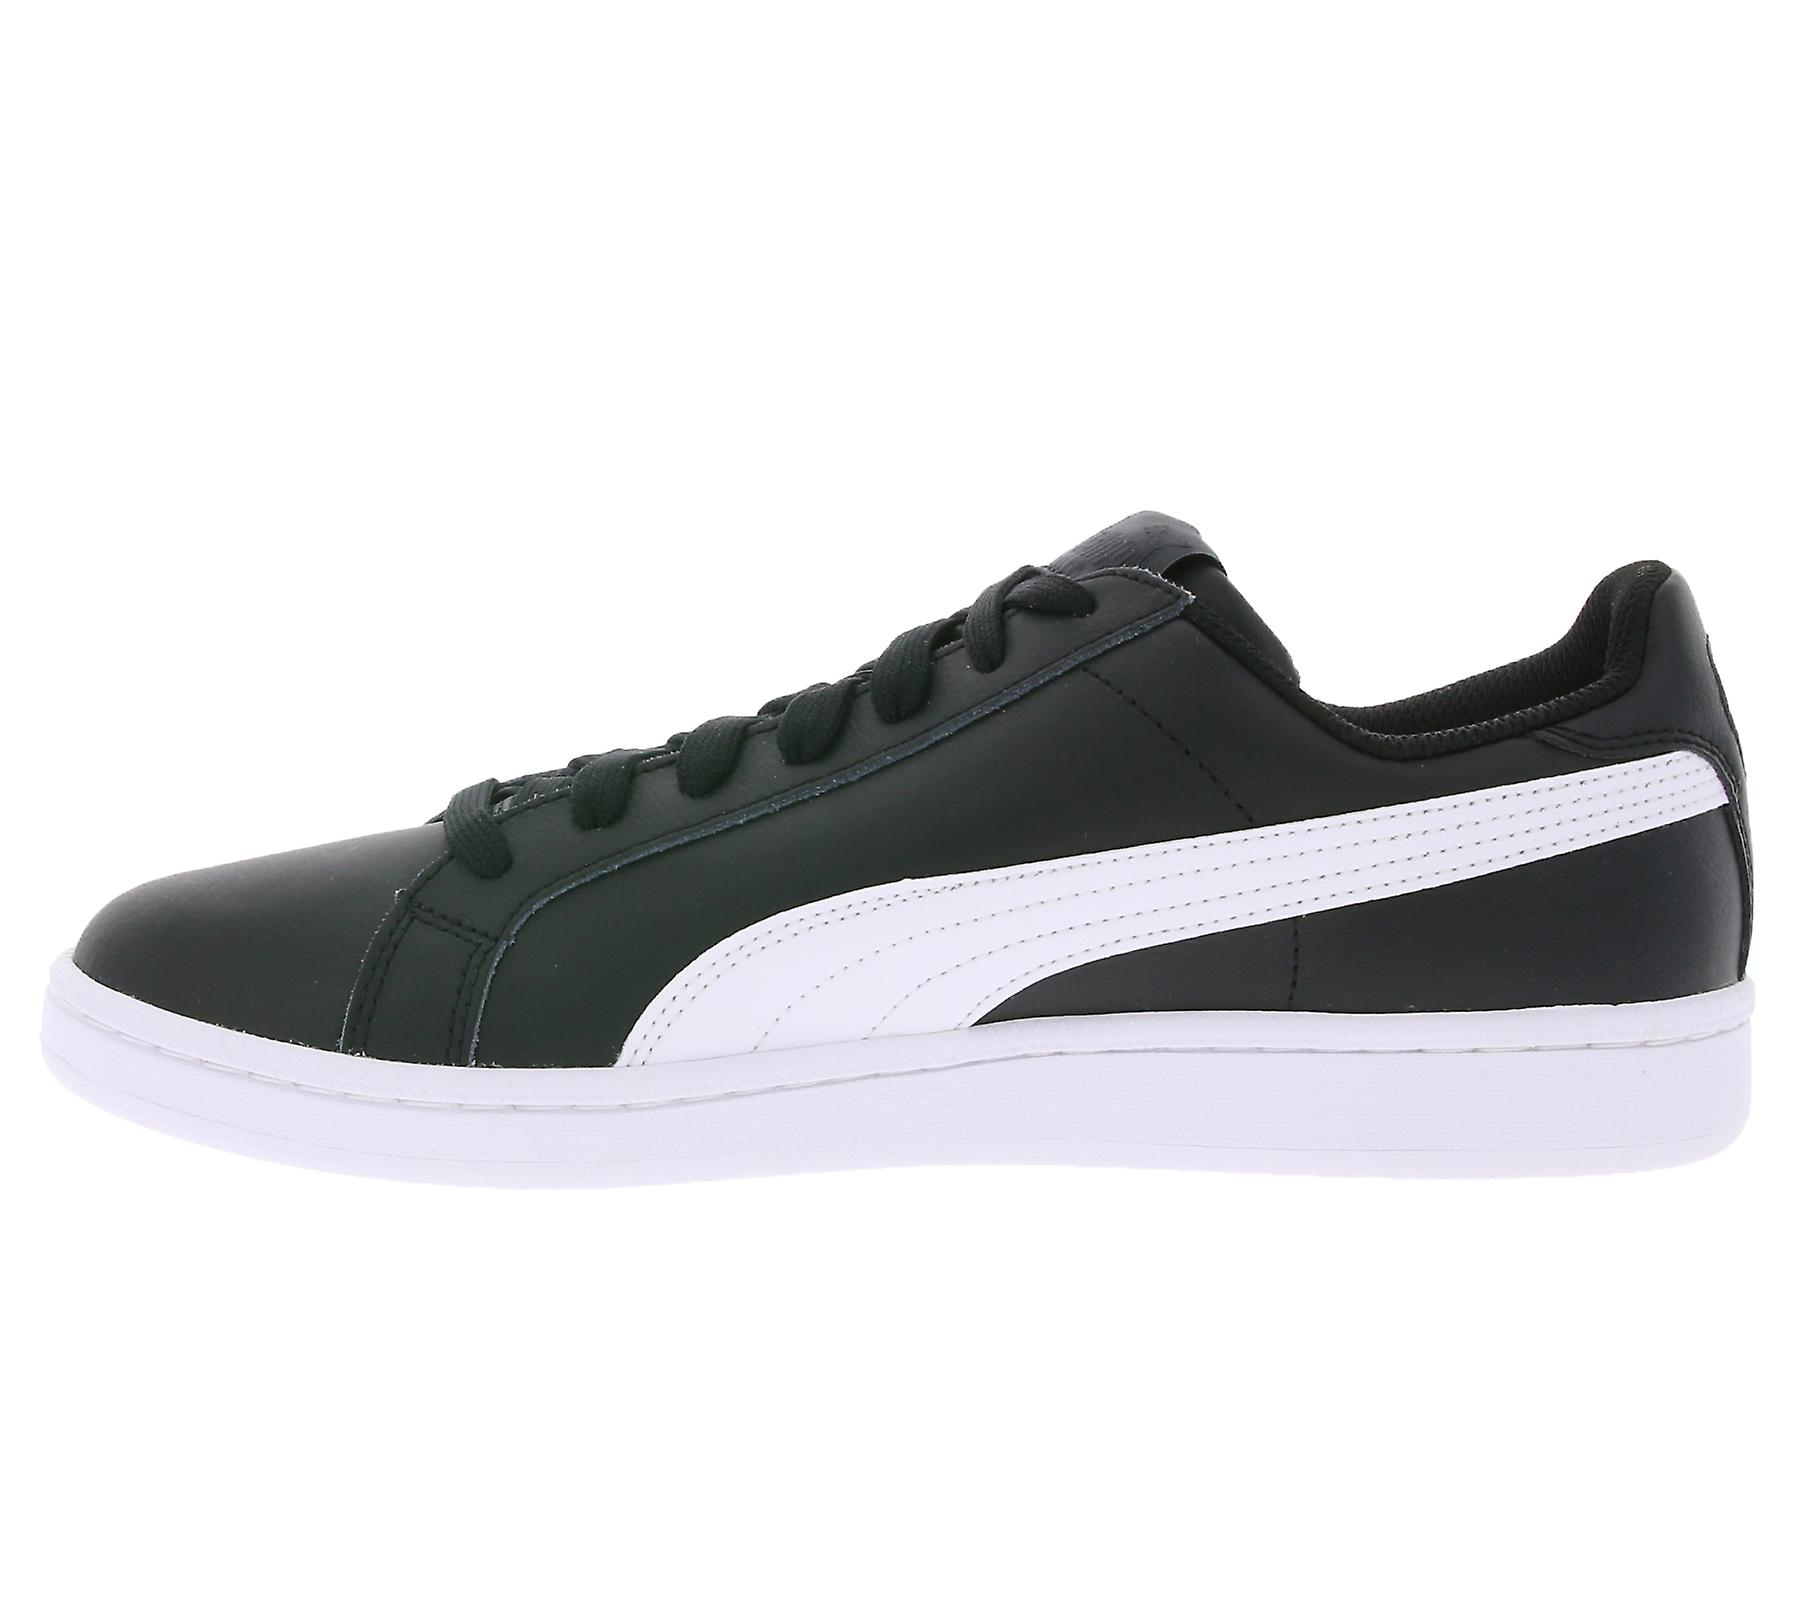 puma smash l turnschuhe herren sneaker schwarz schuhe fruugo. Black Bedroom Furniture Sets. Home Design Ideas